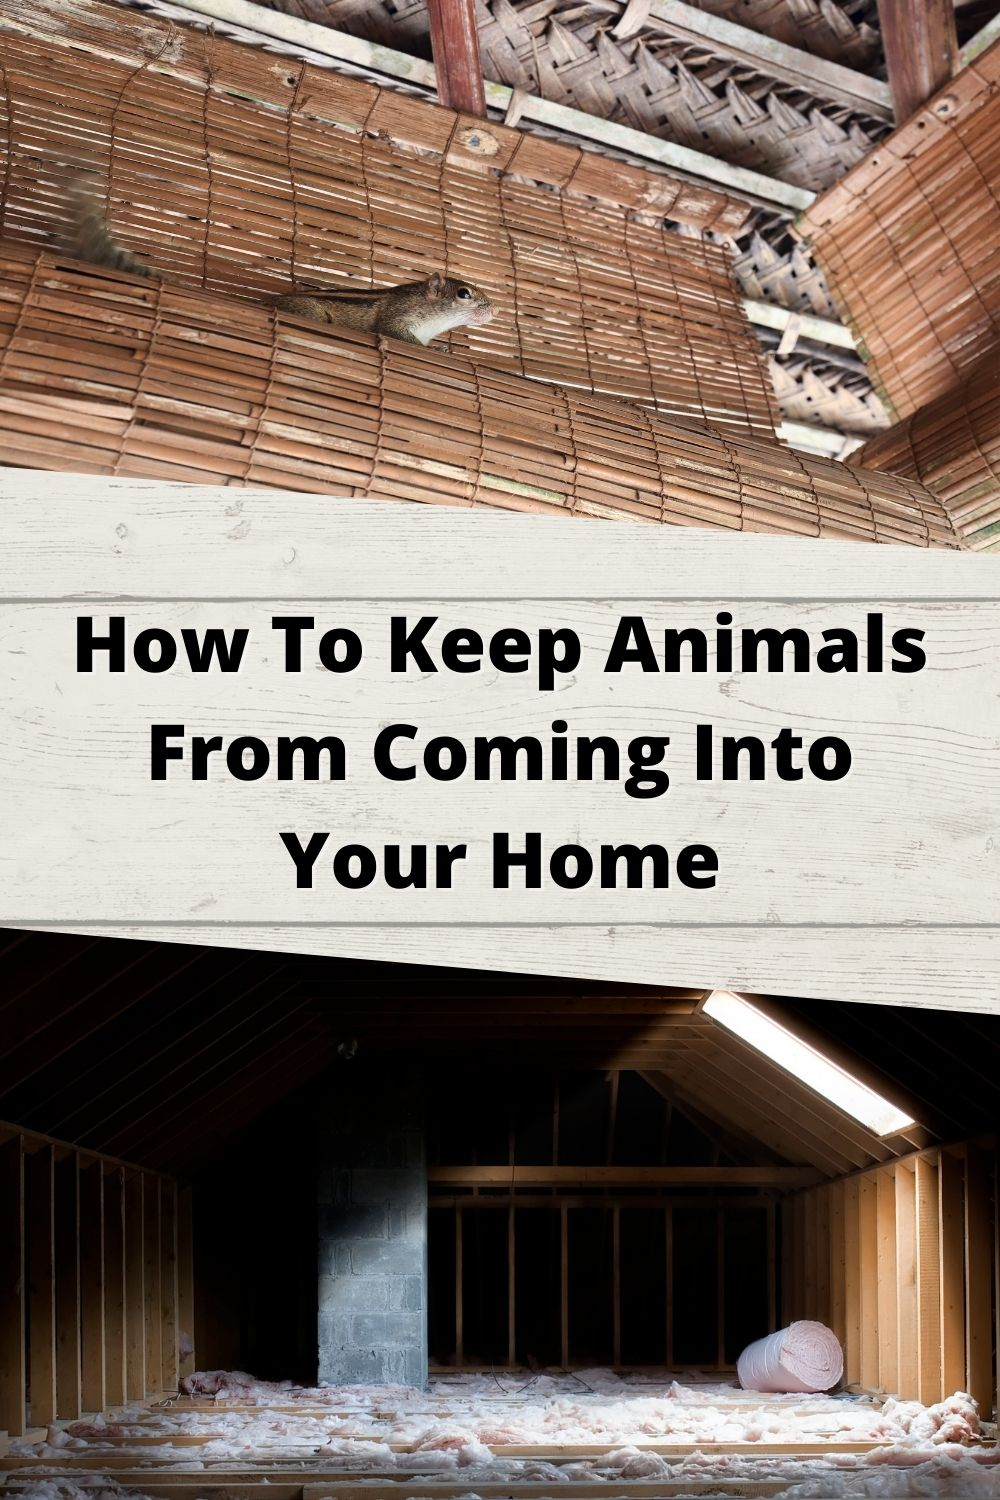 How To Keep Animals and Rodents From Coming Into Your Home